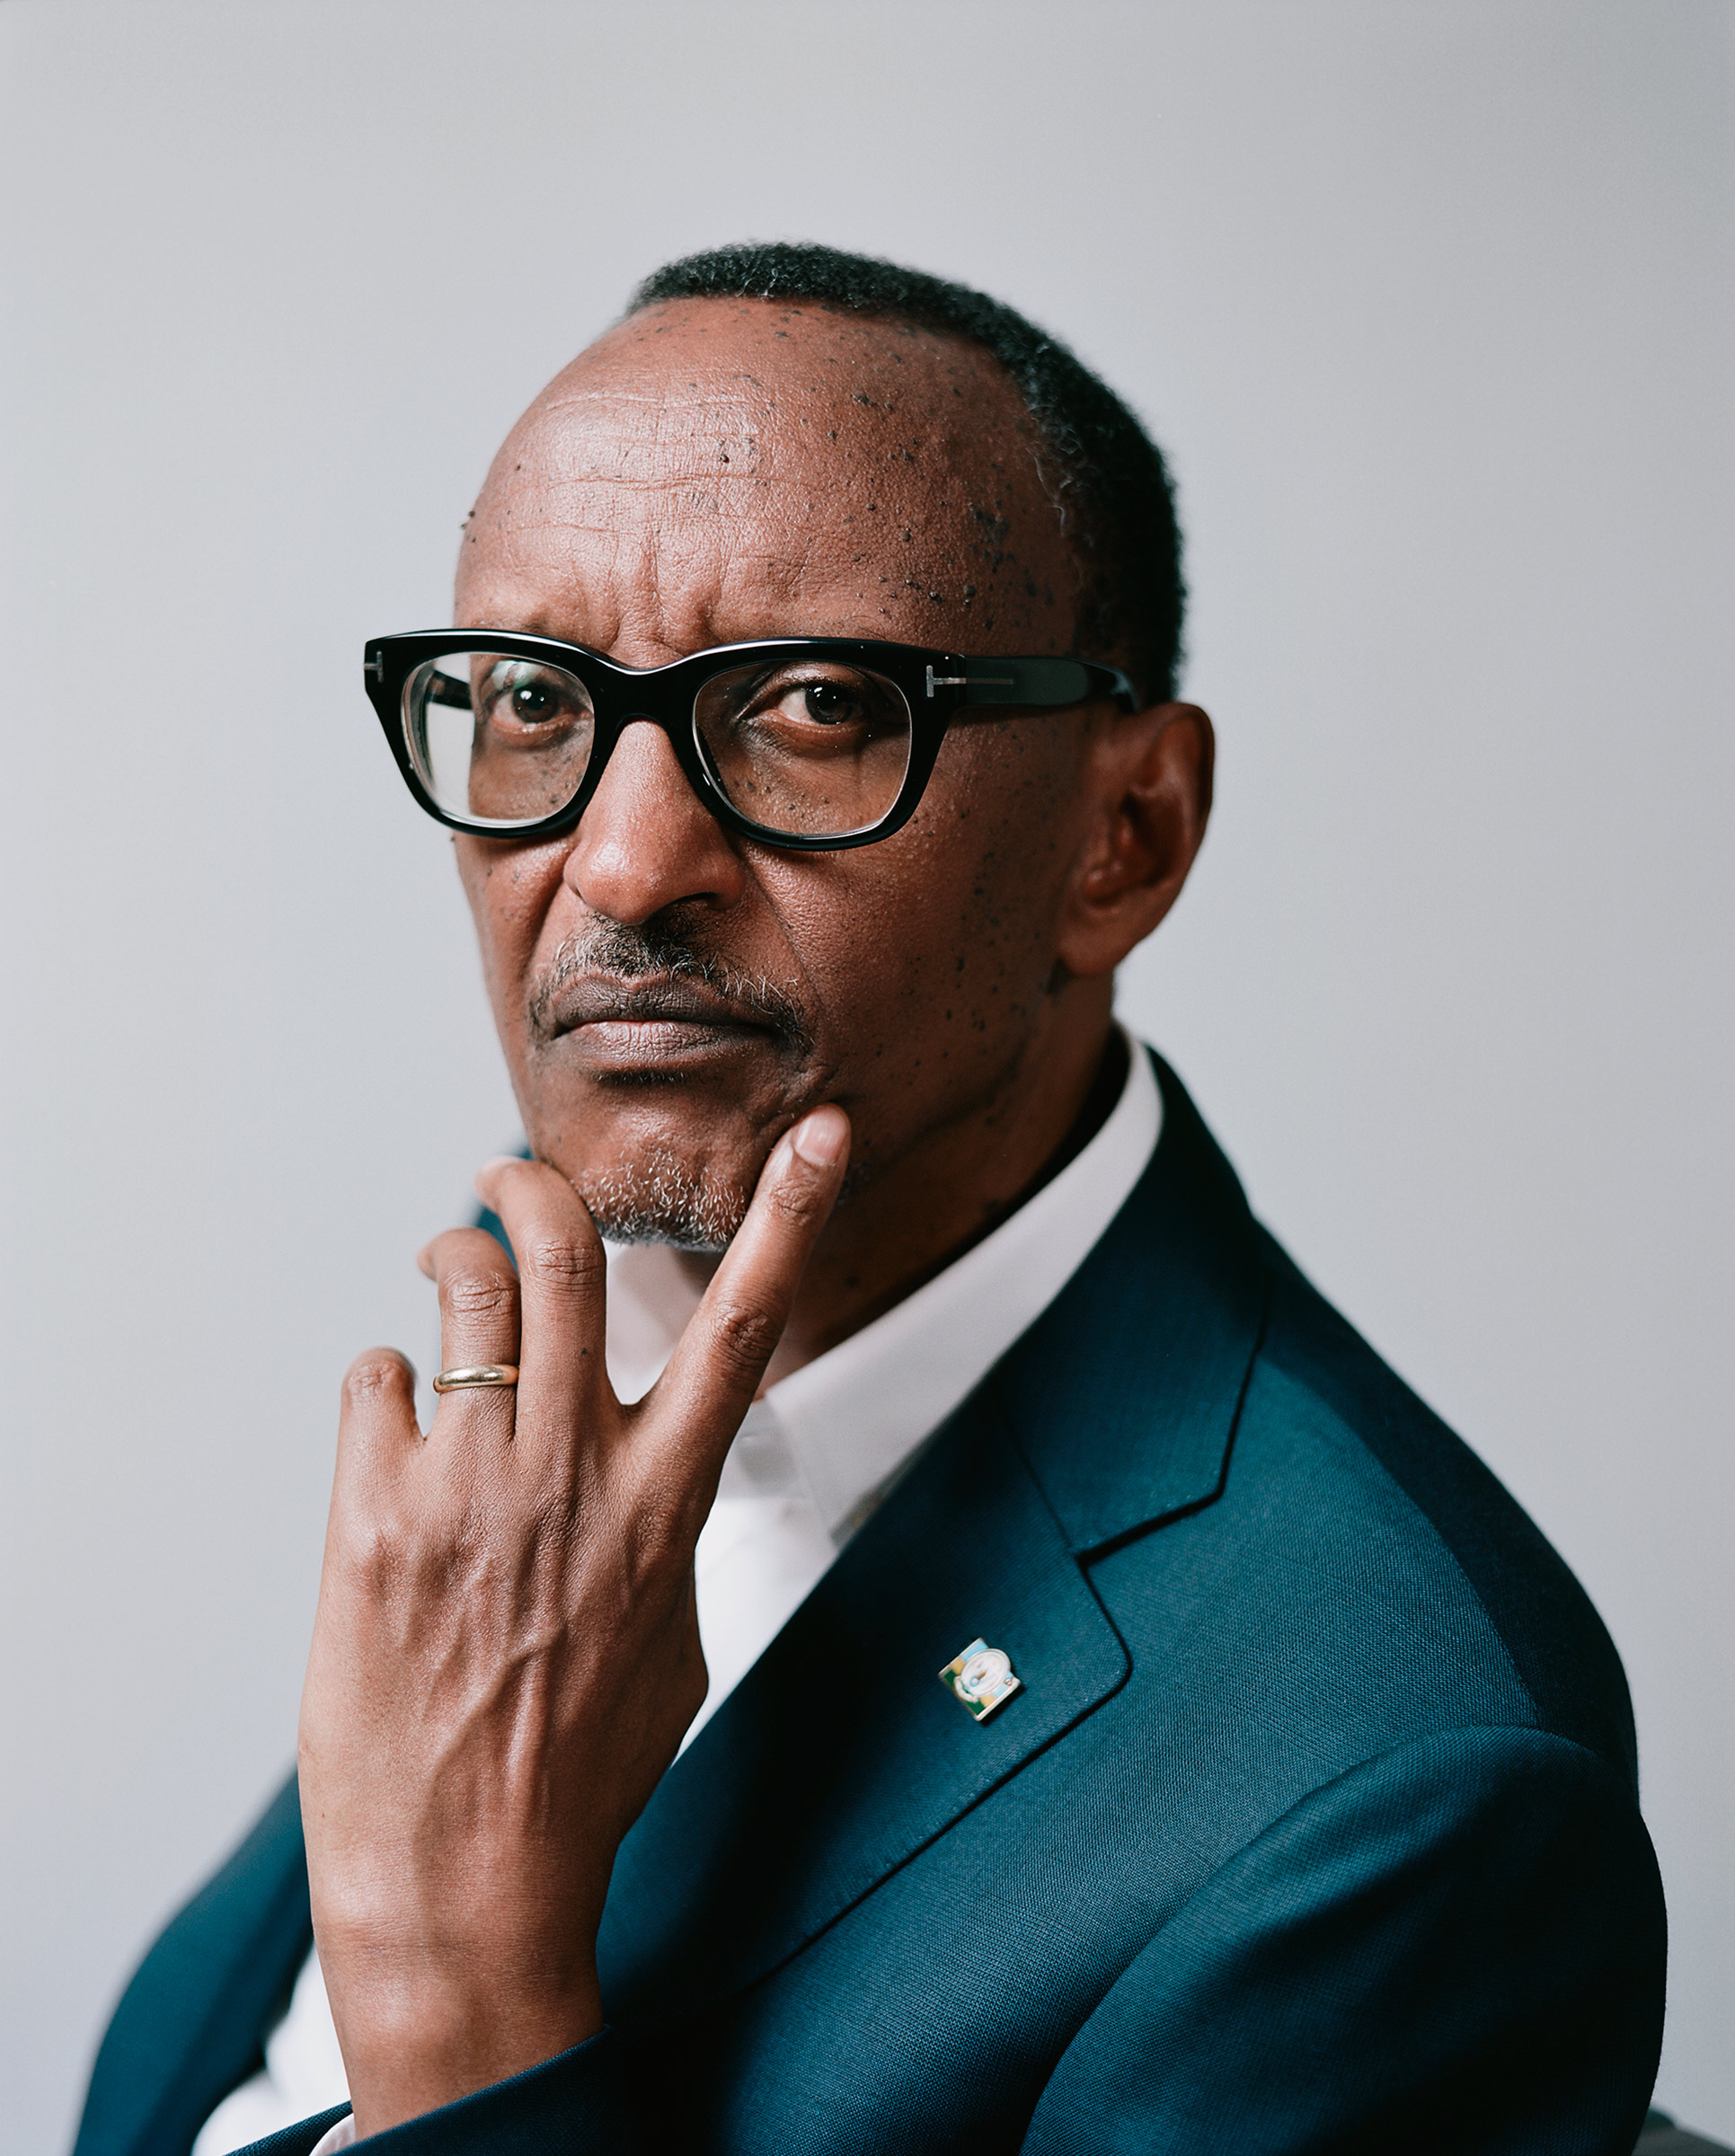 Kagame Tells Cryptic African Folktale Warning World Powers Africa Has Had Enough